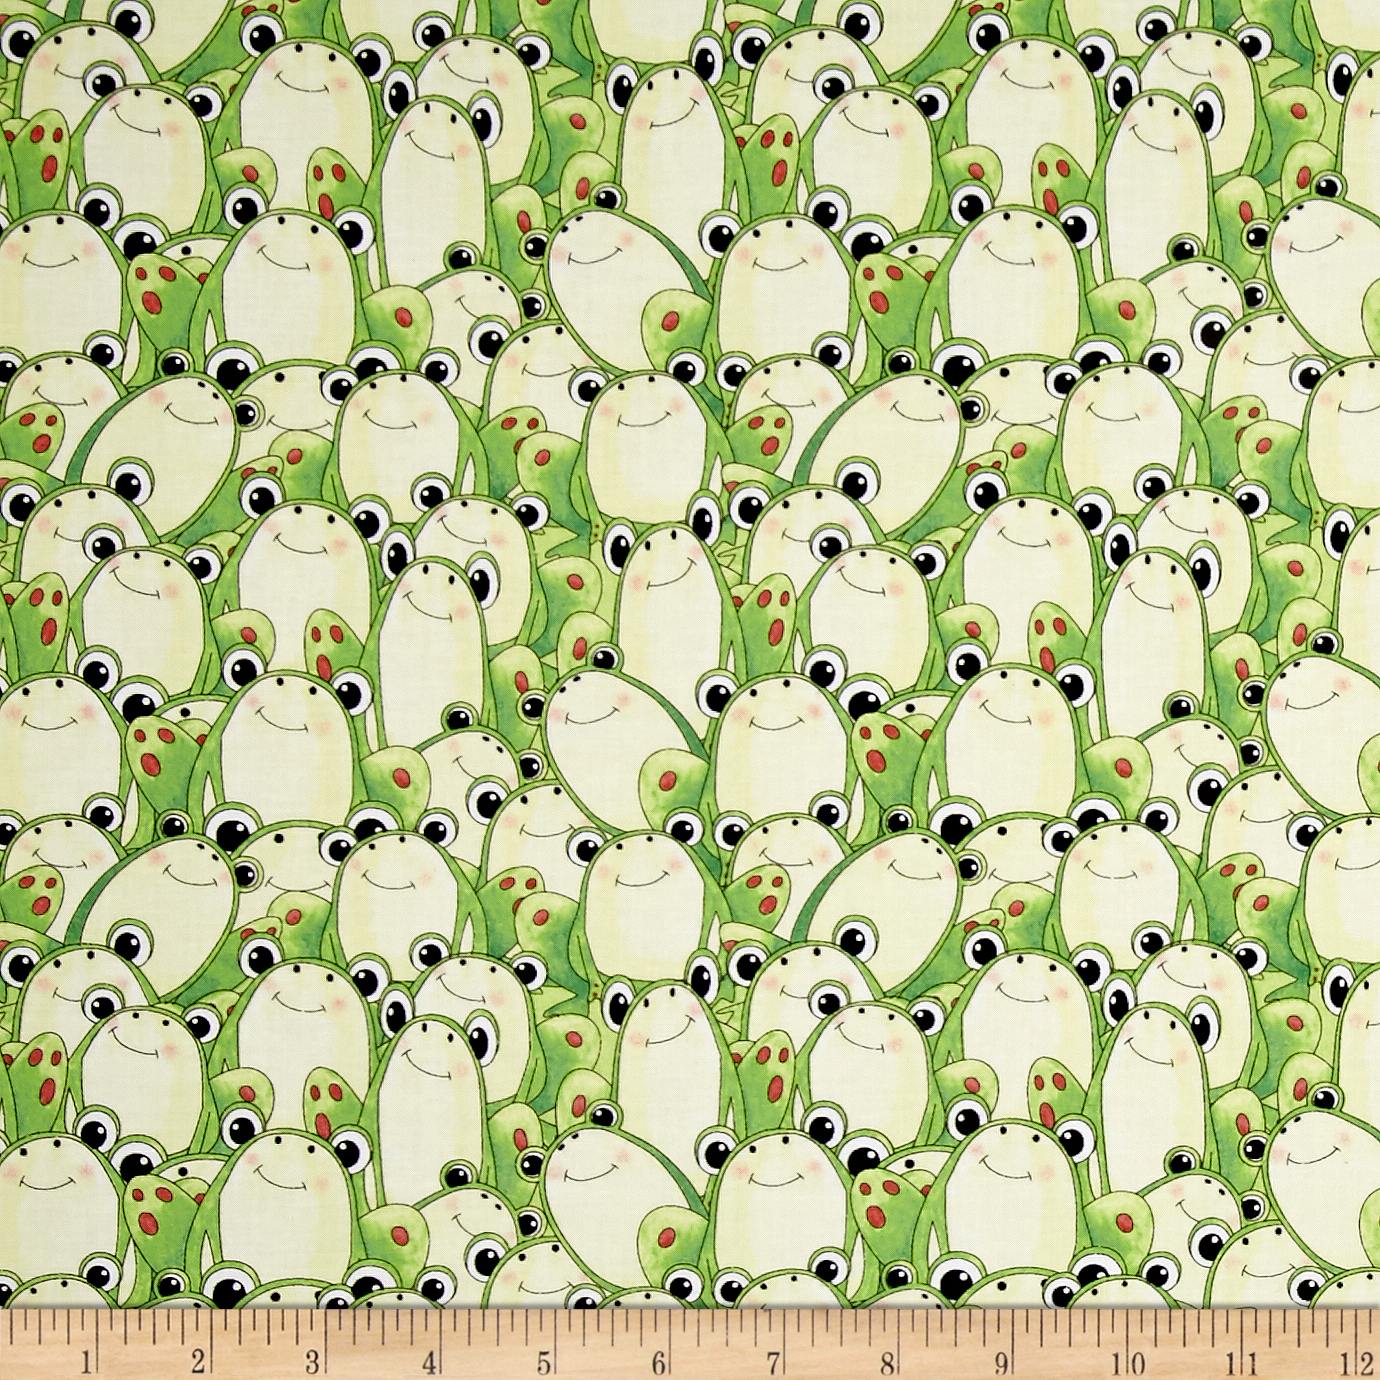 It's a Pond Party Frogs Green/Yellow Fabric by Quilting Treasures in USA